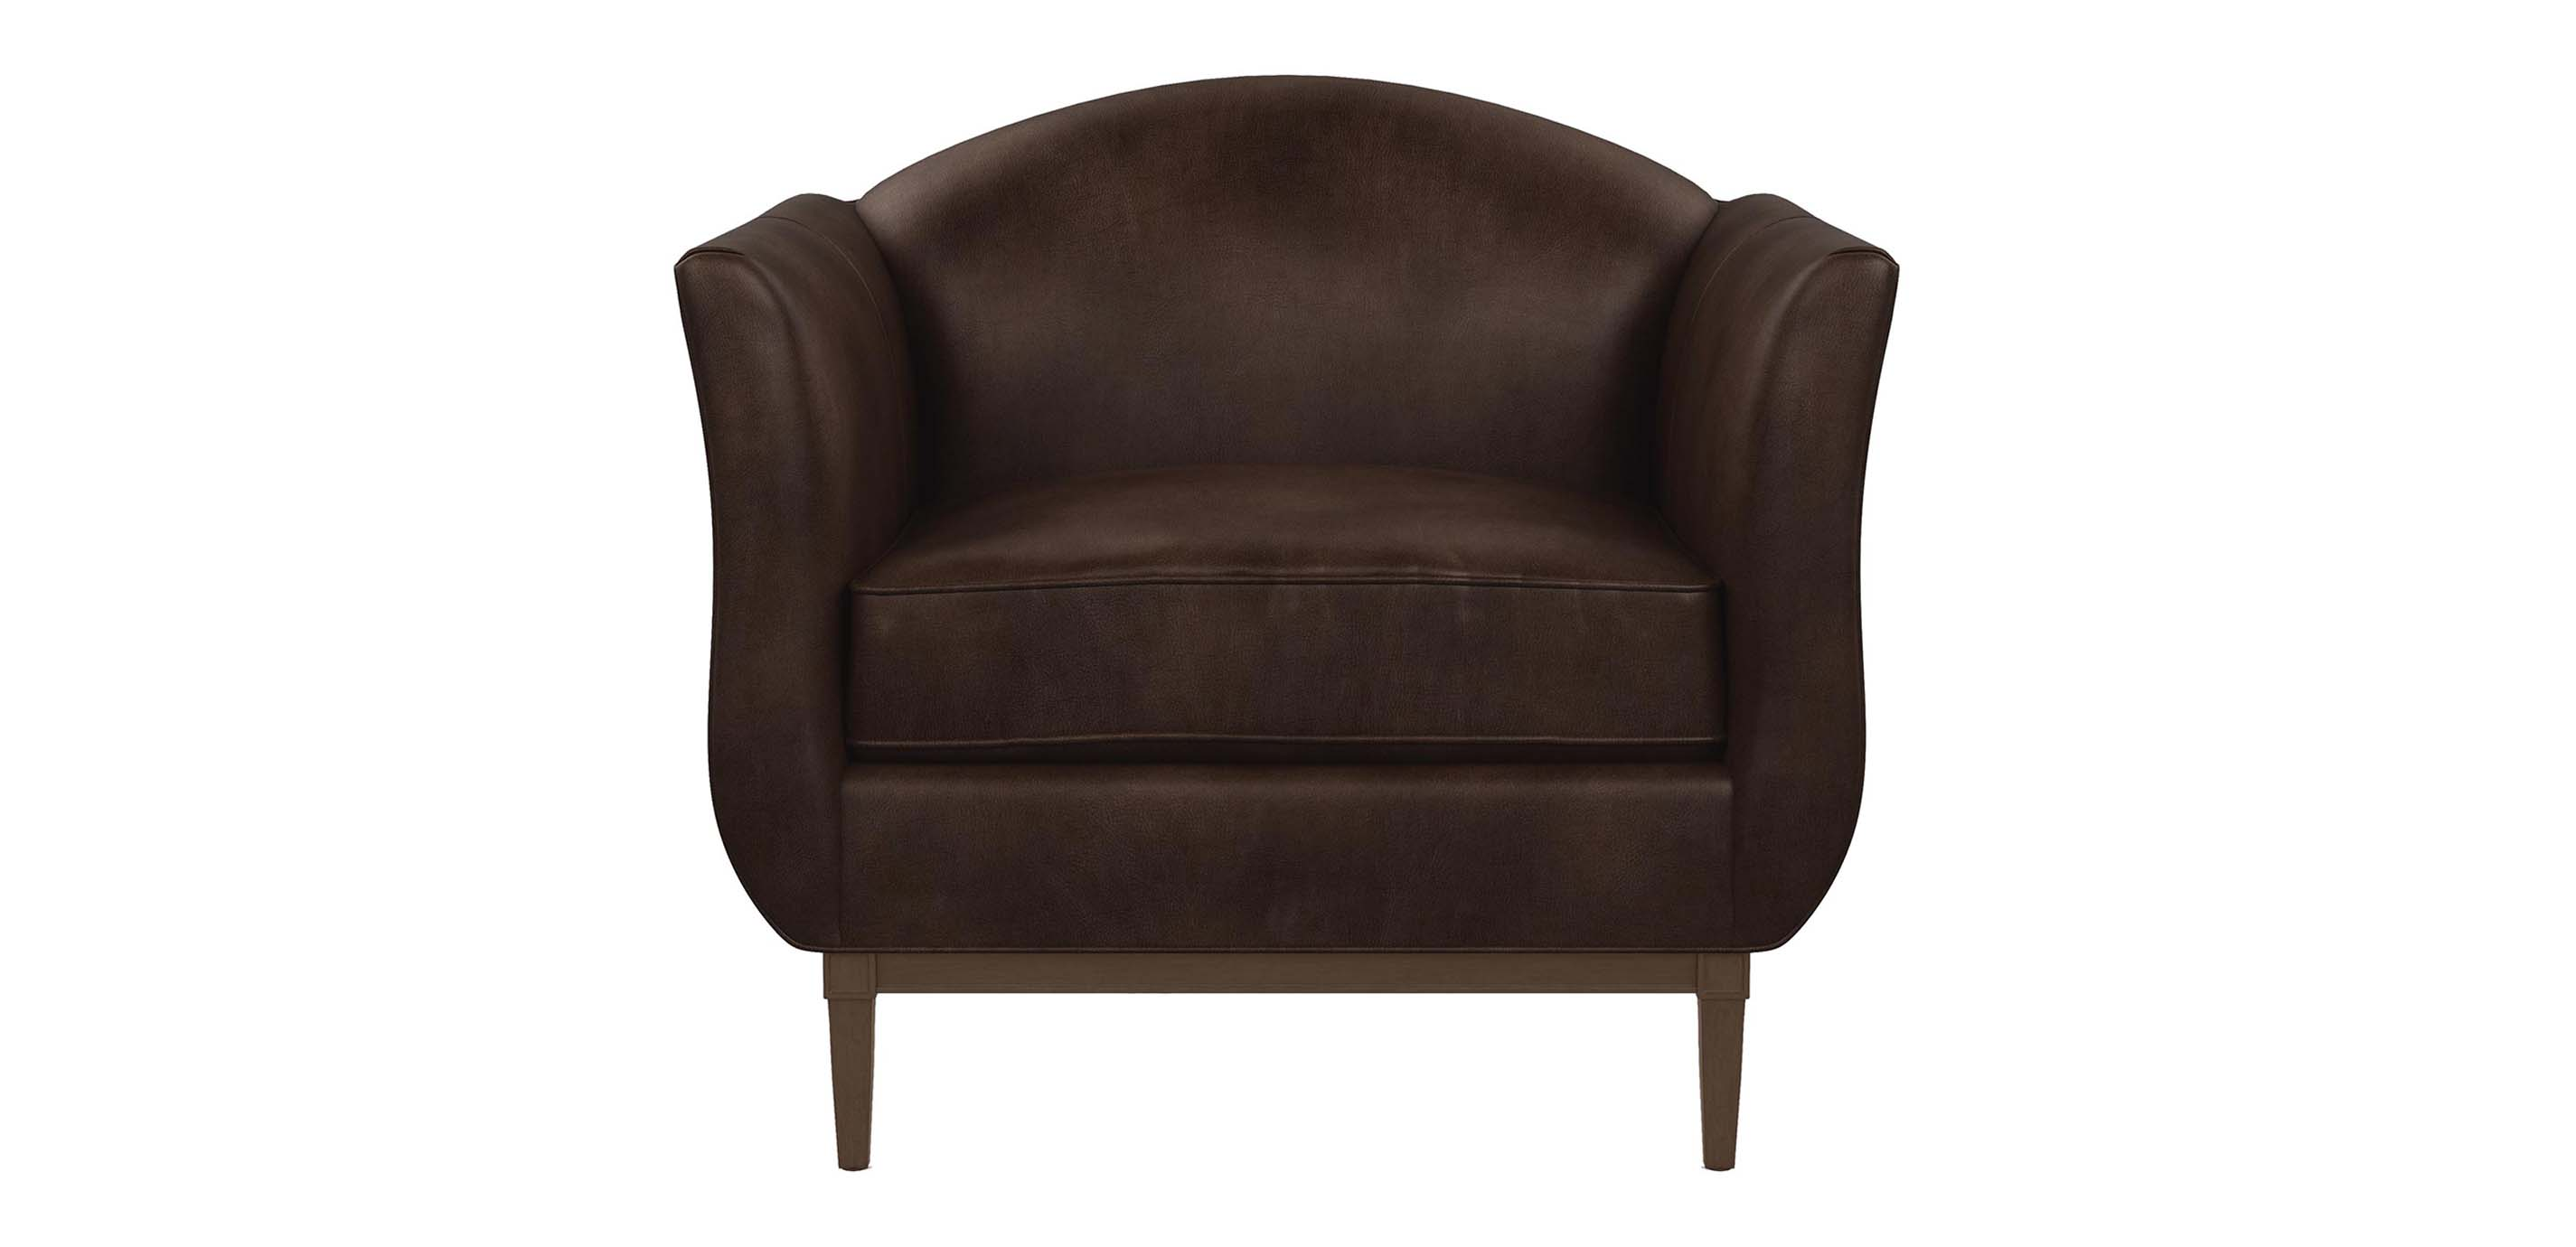 Audrey Leather Chair The Audrey Collection Ethan Allen